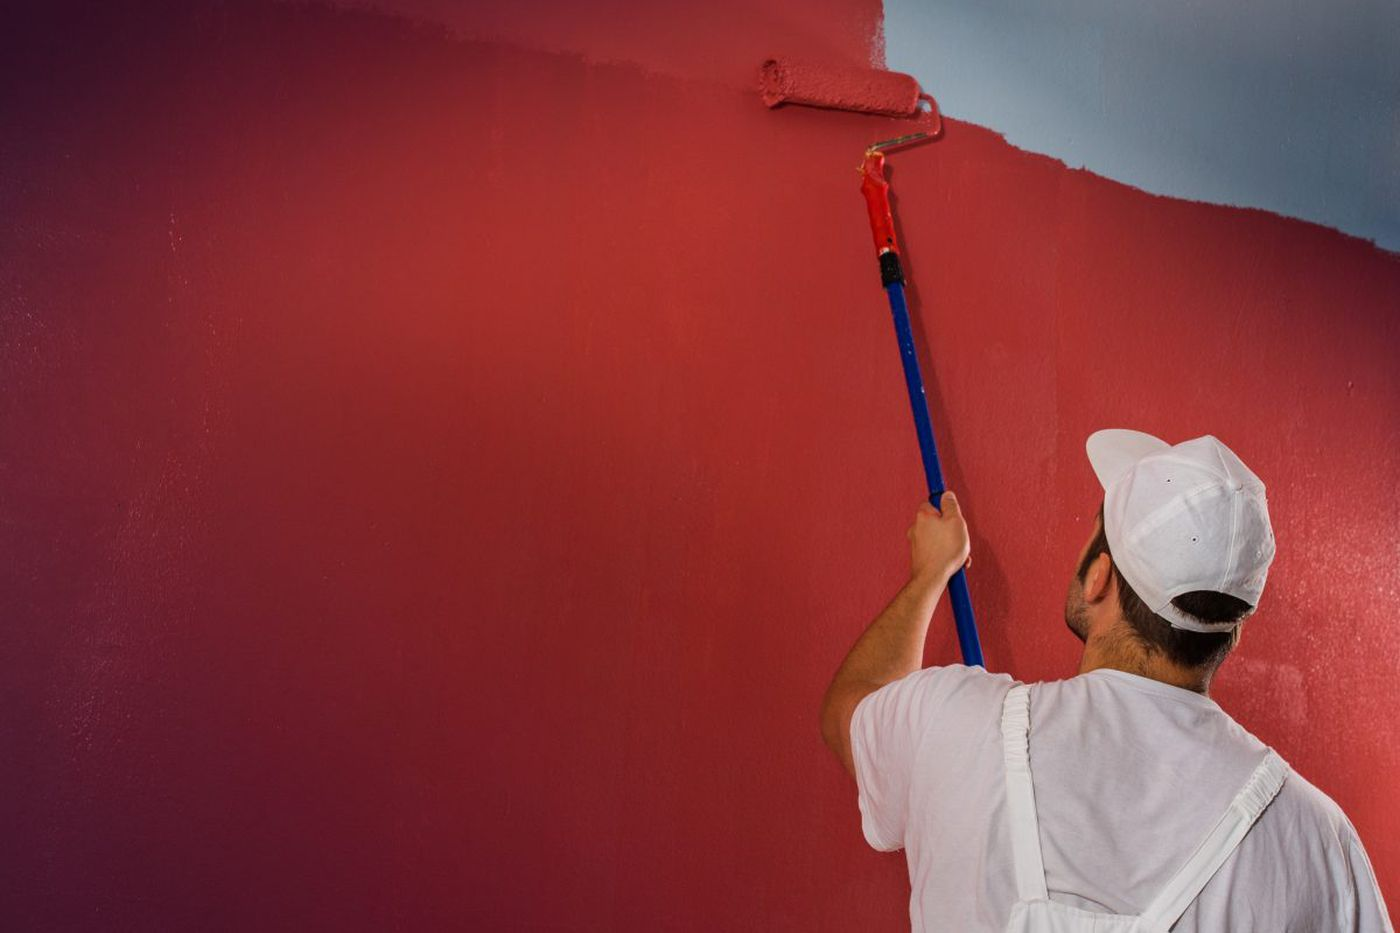 Tips on when you should hire a painting pro